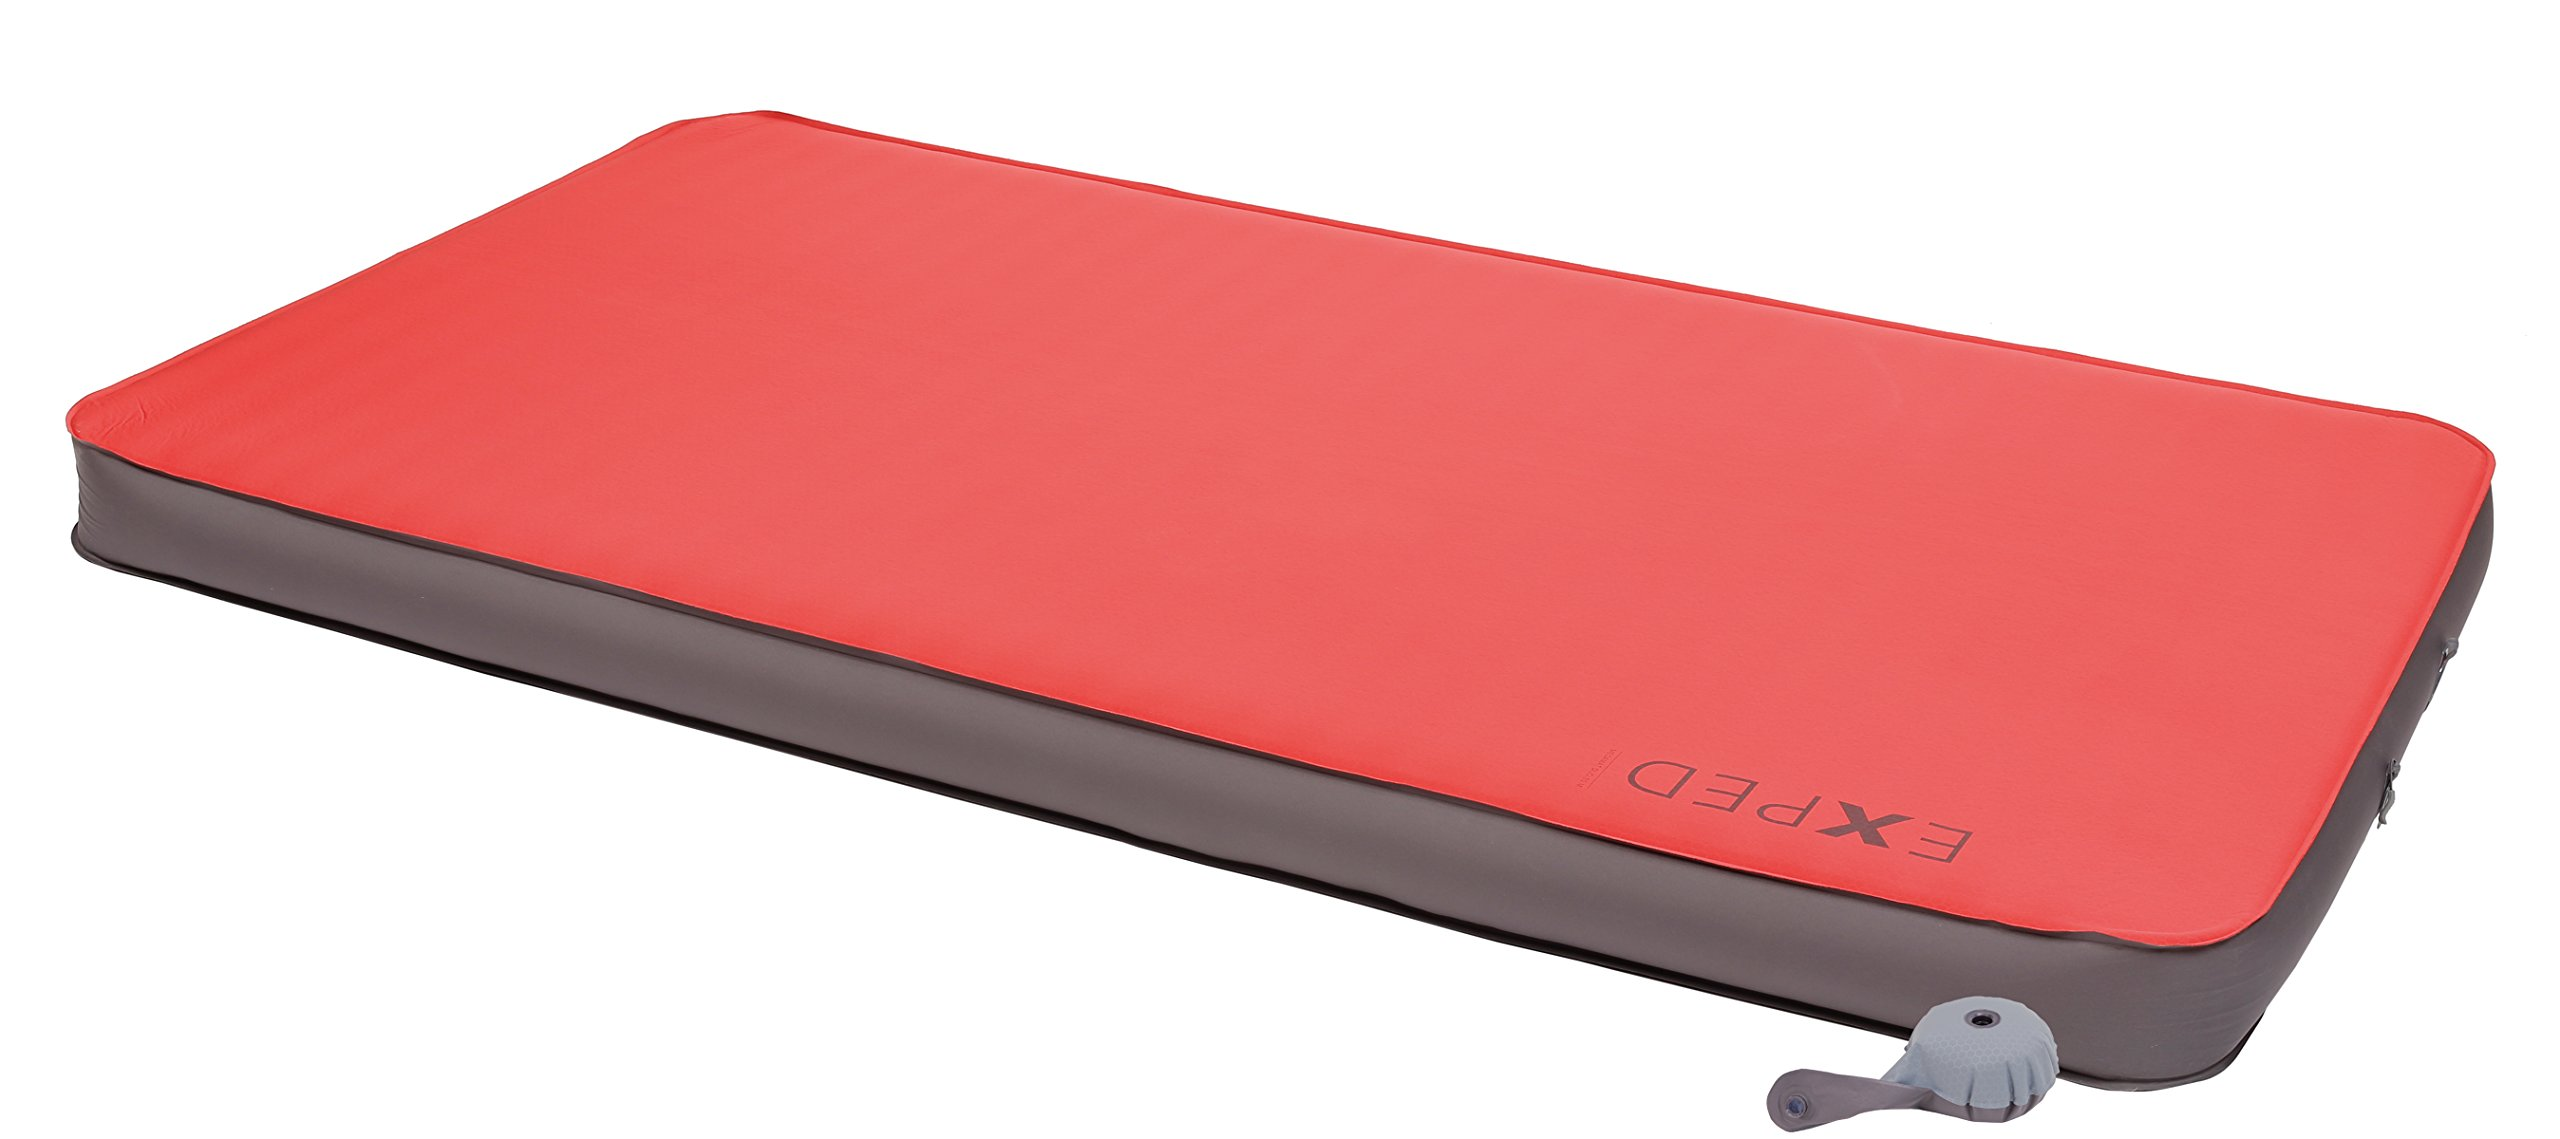 Exped MegaMat Duo 10 Self-Inflating Sleeping Pad, Ruby Red, Medium by Exped